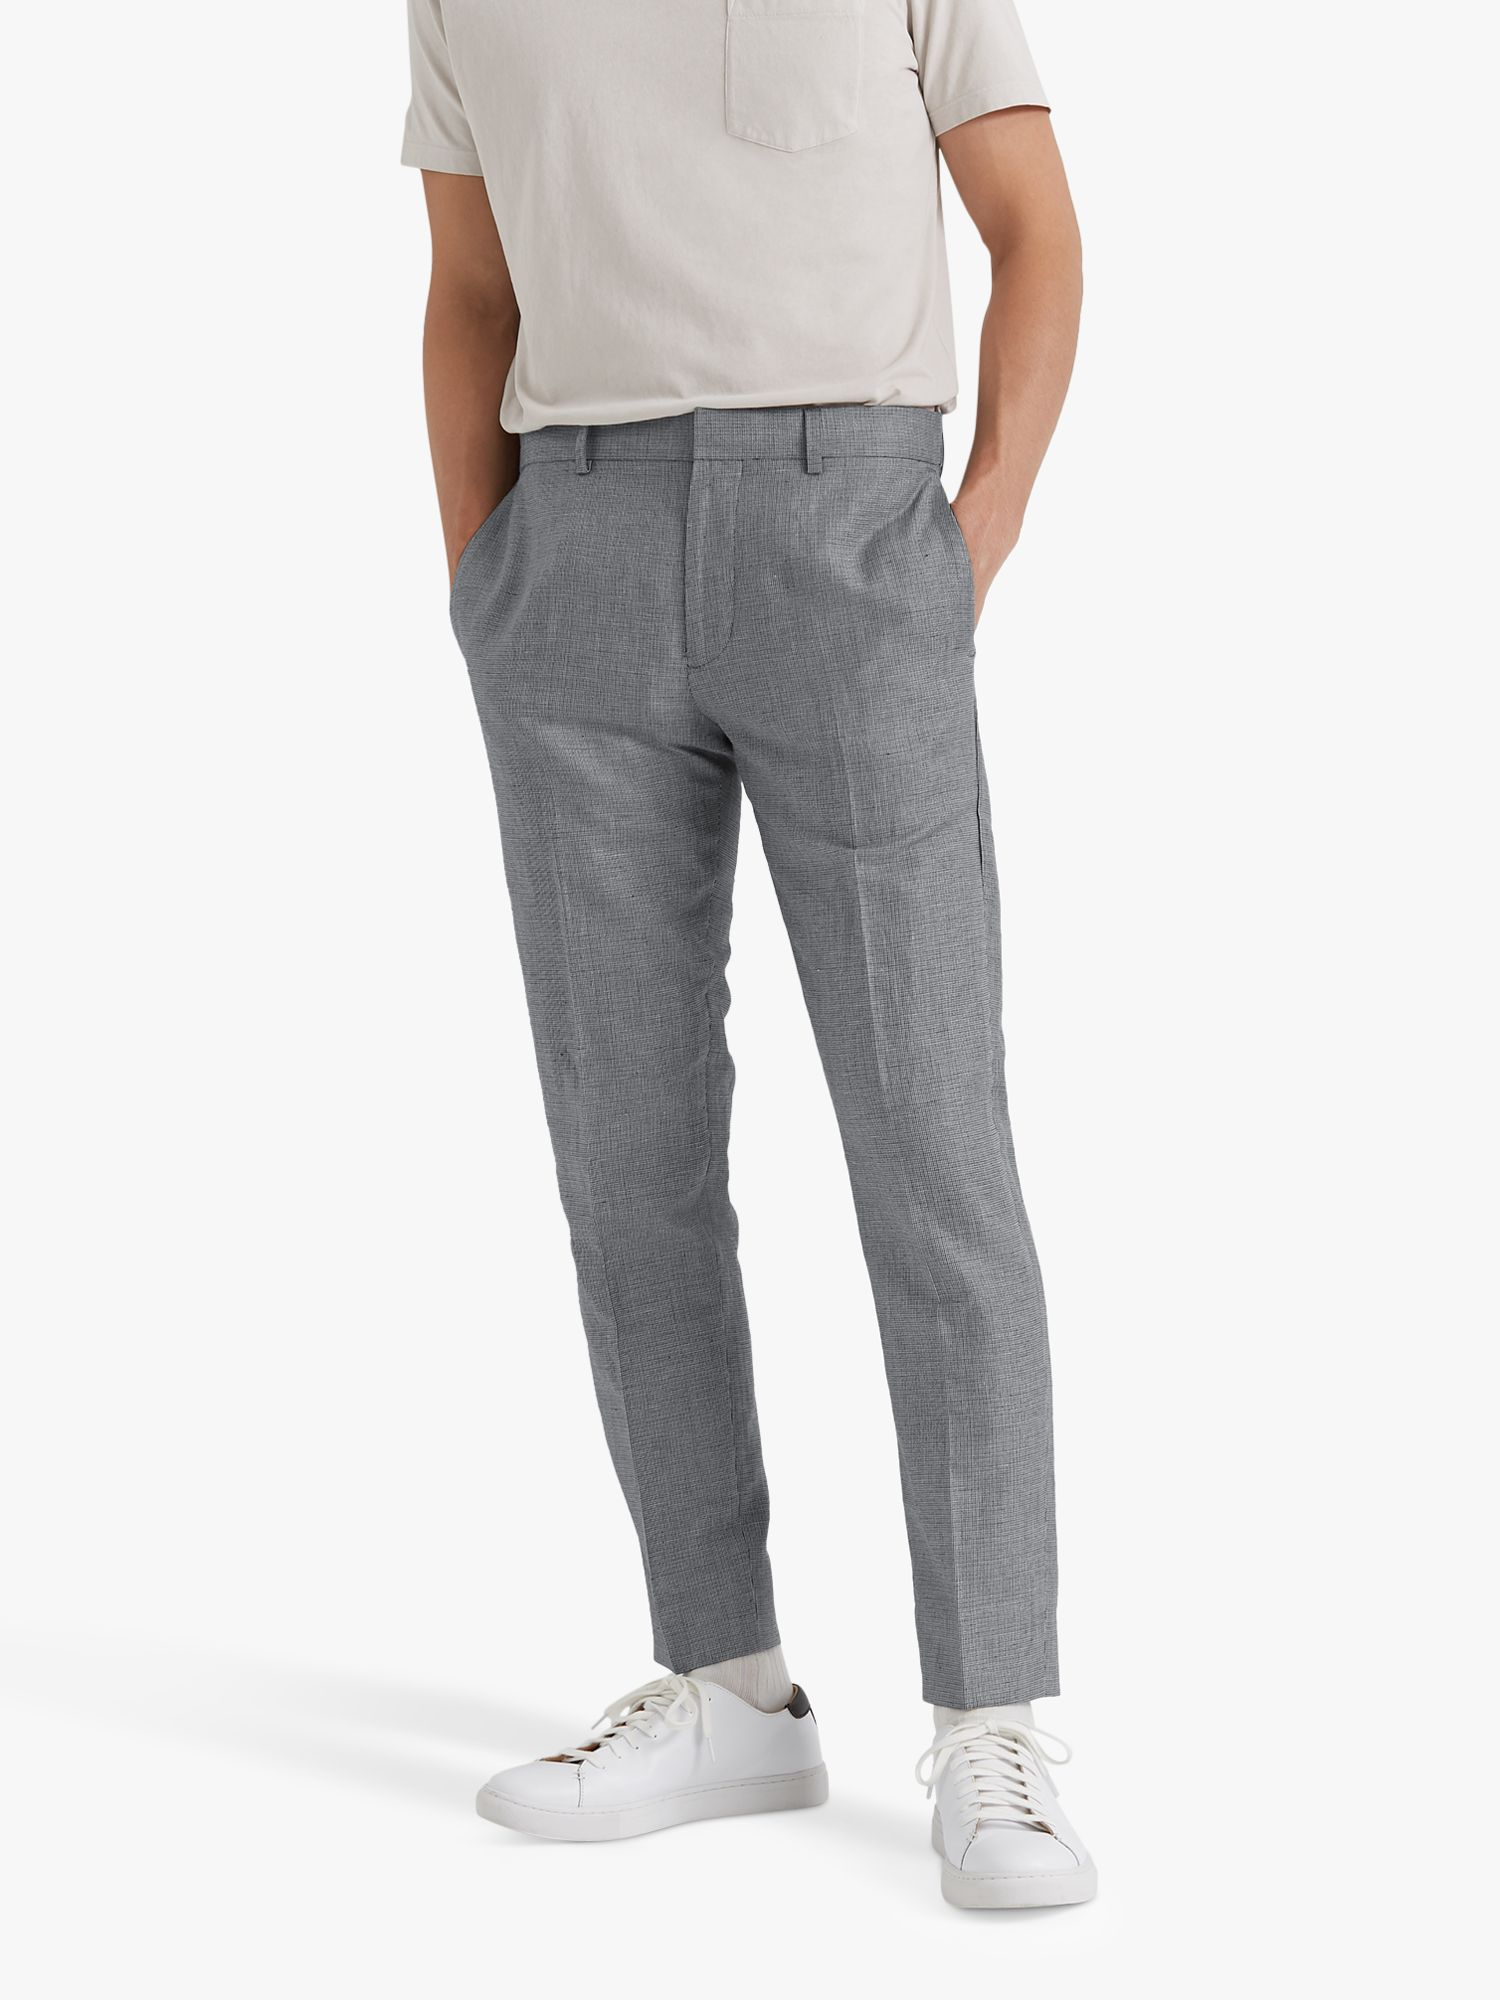 Carhartt WIP Club Monaco Sutton Trousers, Navy